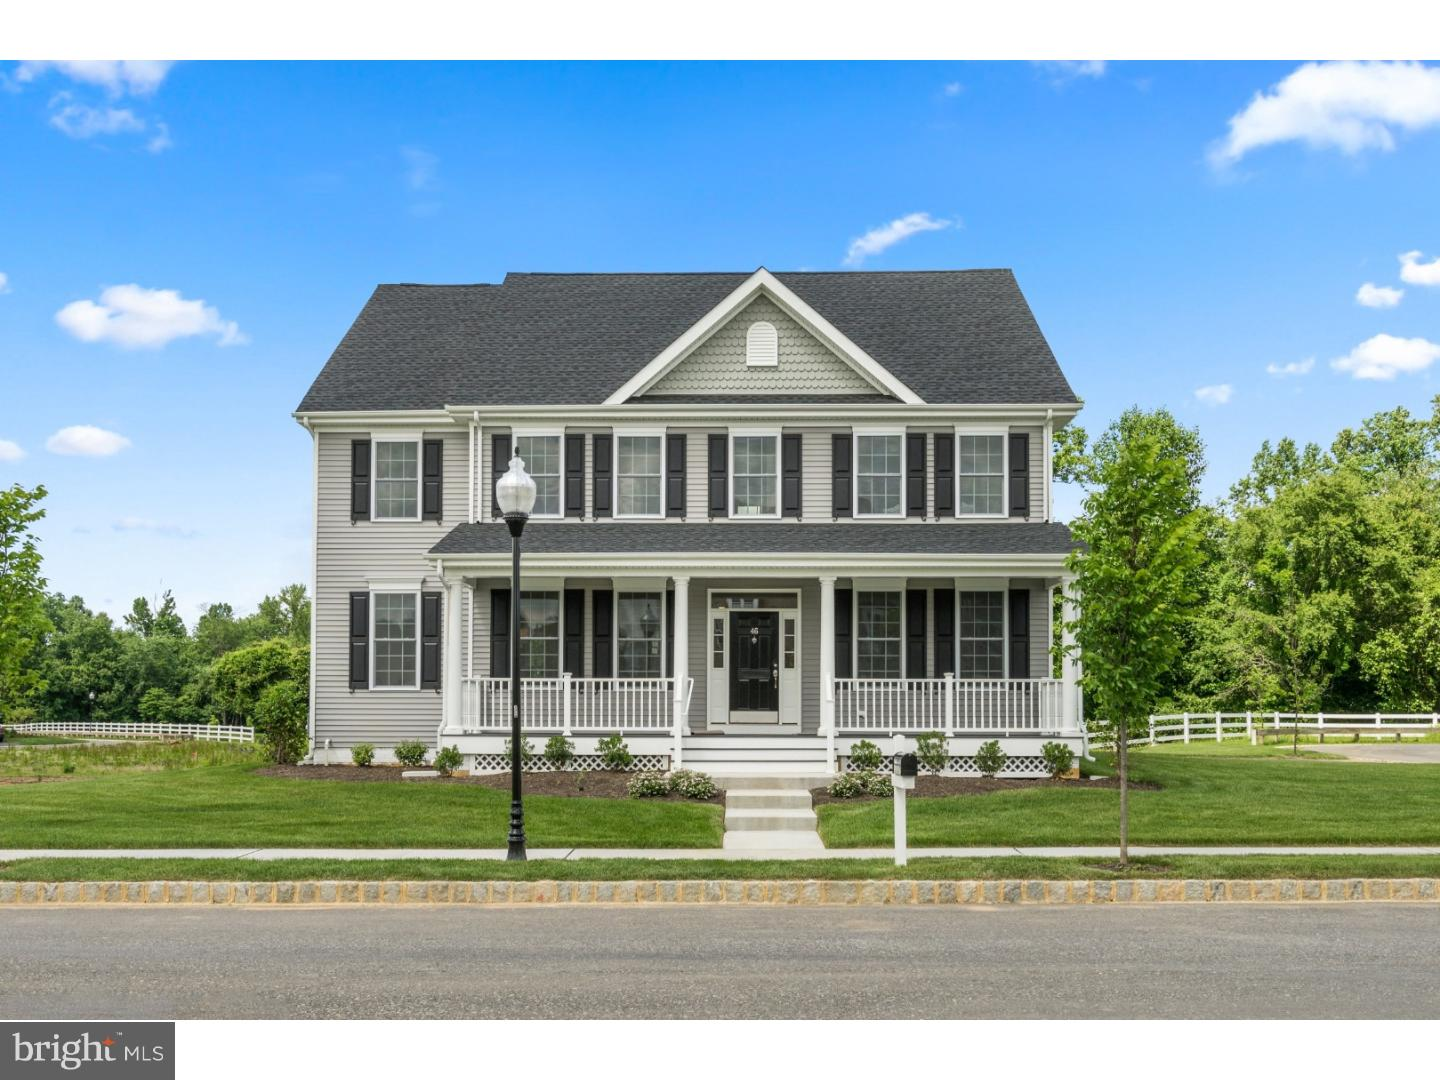 30 CANTER PLACE, CHESTERFIELD TWP, NJ 08515